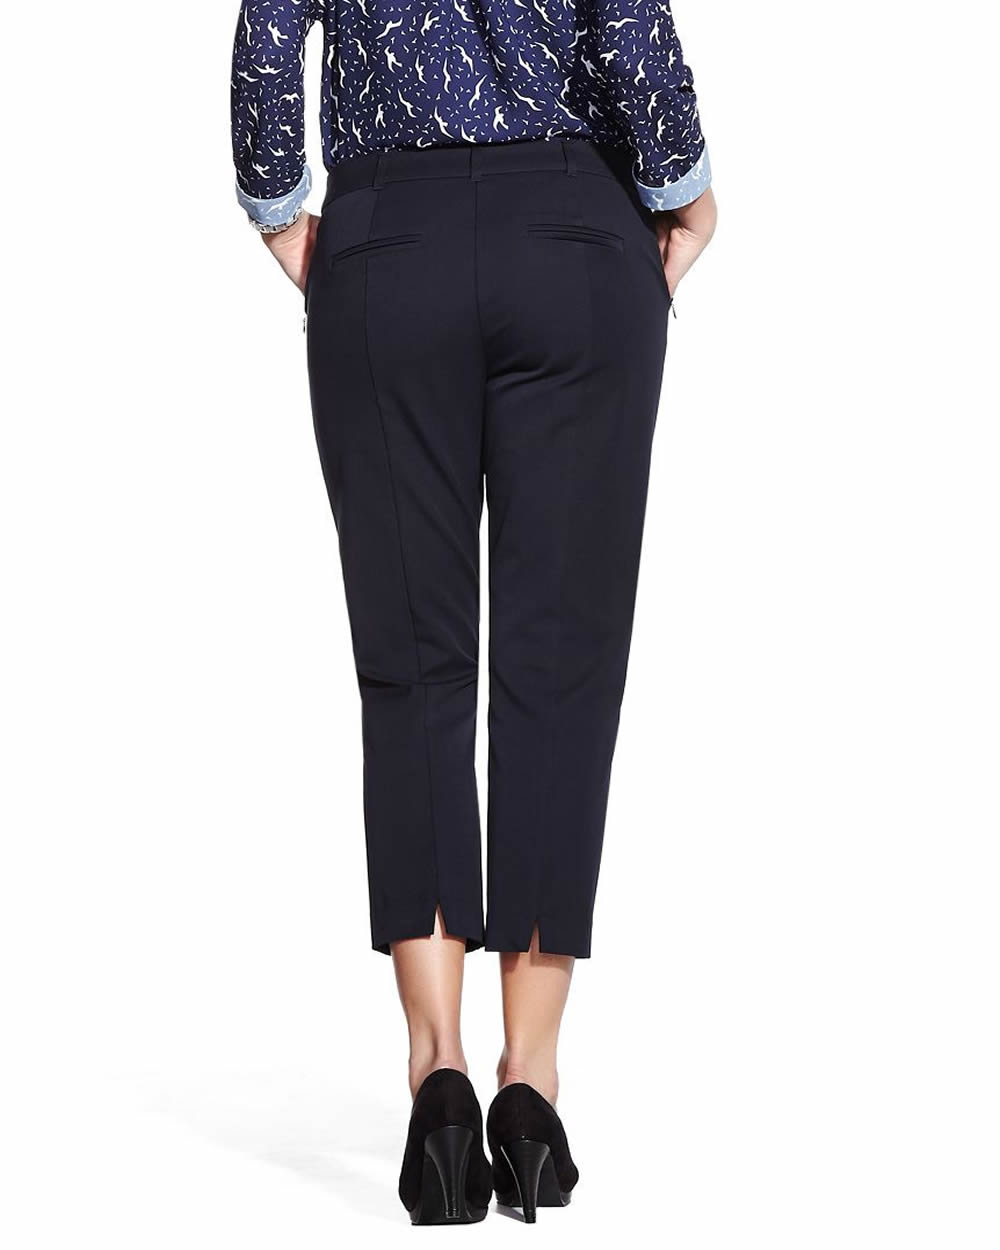 Technically, crop pants are pants that end anywhere from below the knee to above the ankle. By this definition, capris qualify as a type of crop pants.